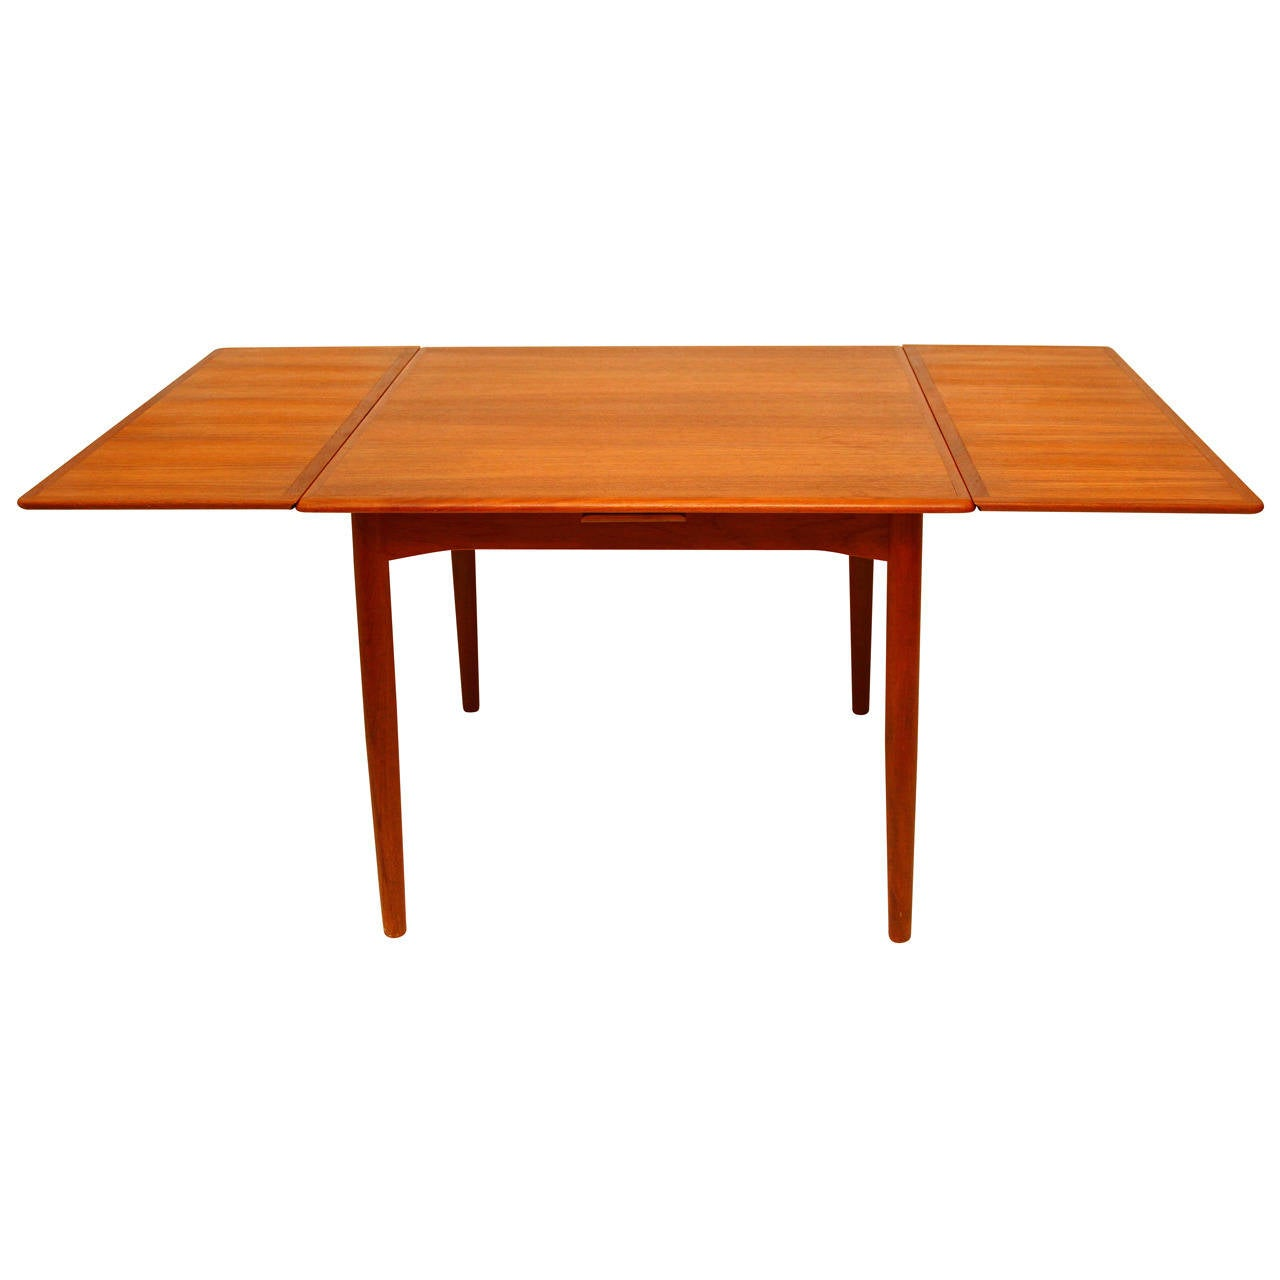 Danish teak dining table 2017 2018 best cars reviews for Best dining table 2017